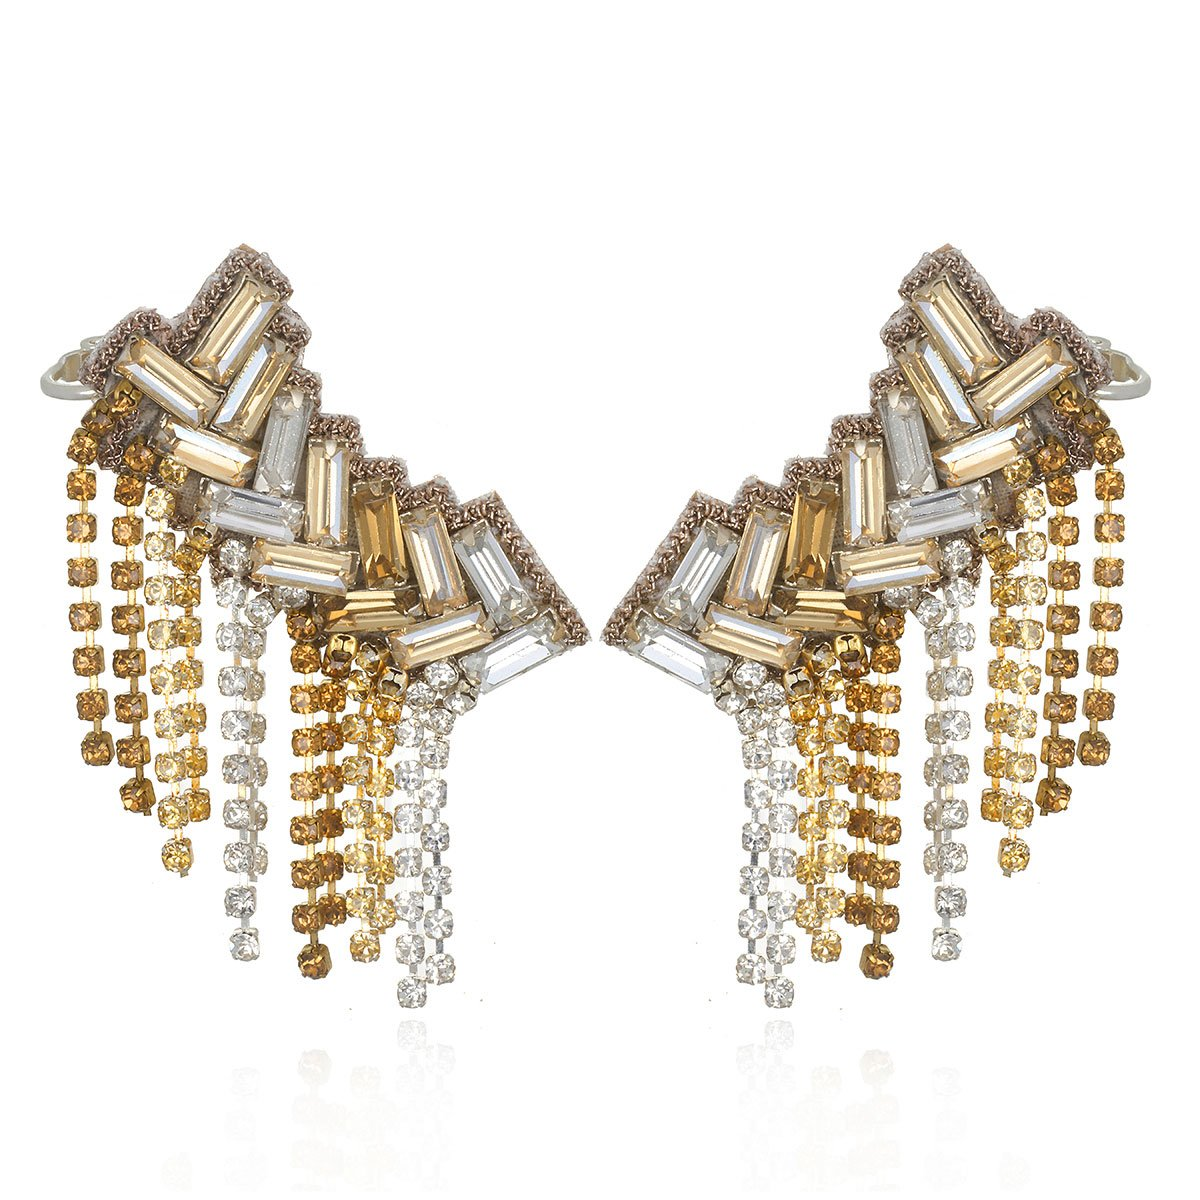 Florian Champagne Ear Crawlers by SUZANNA DAI